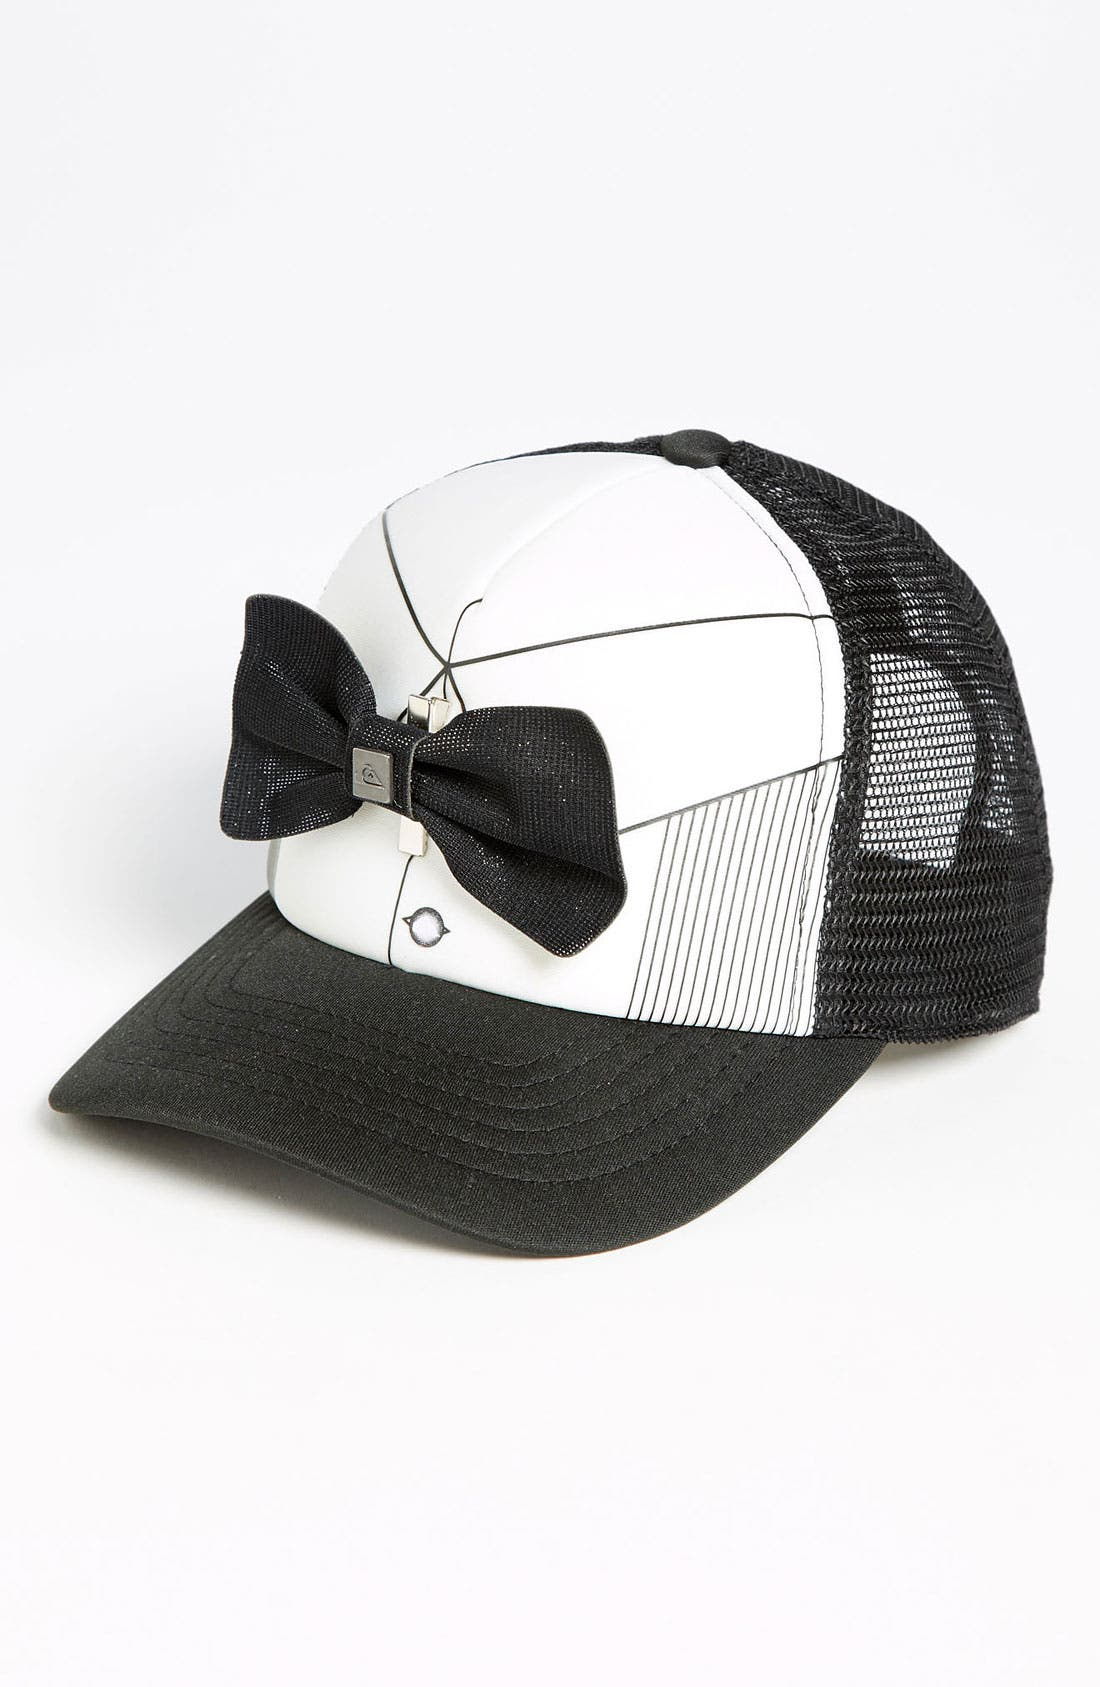 Alternate Image 1 Selected - Quiksilver 'Diggler' Trucker Hat (Boys)